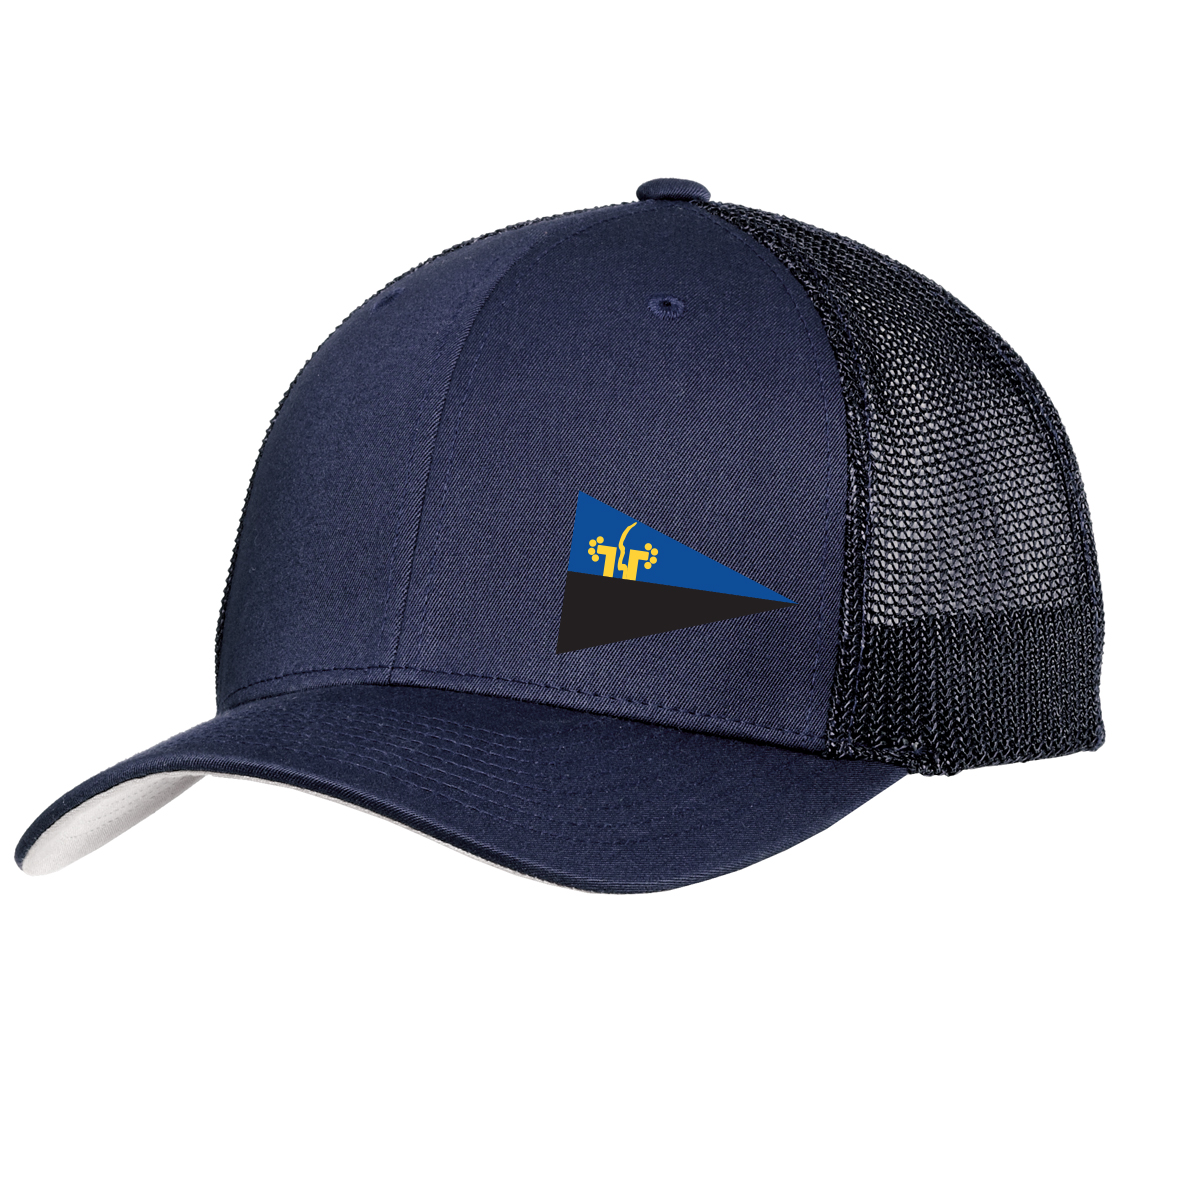 Mudratz Flex Fit Cap